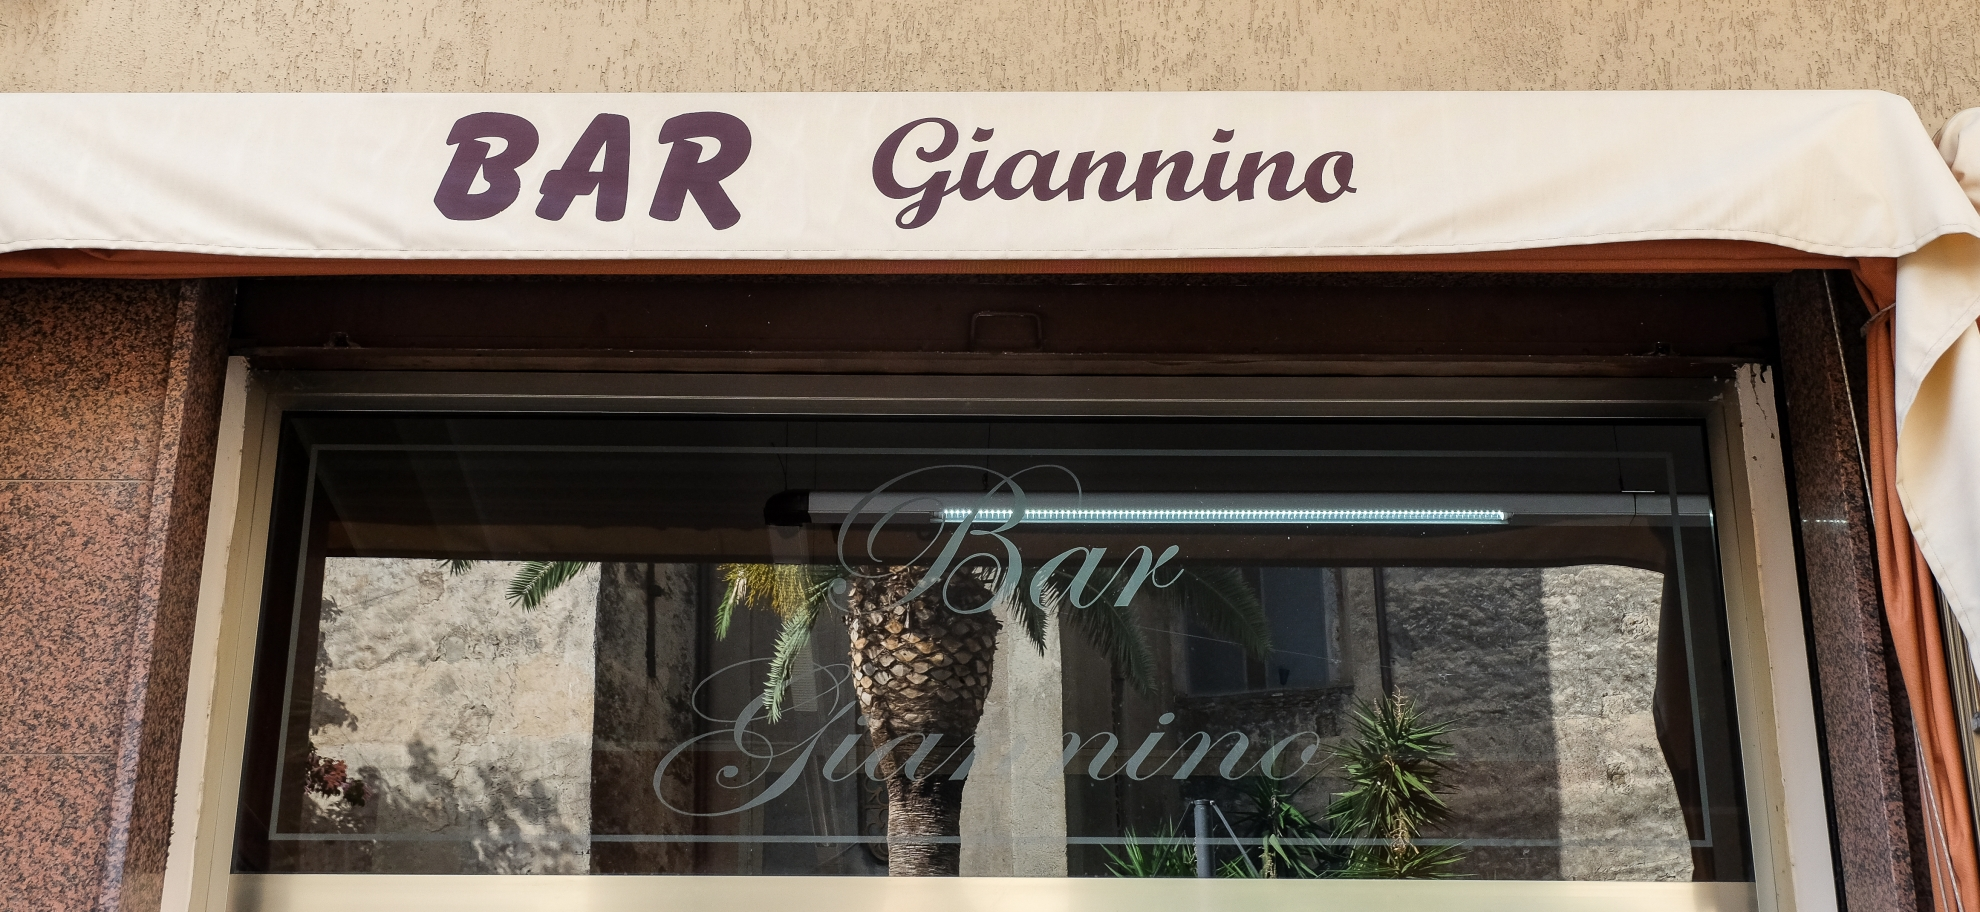 Bar Giannino - Bar Gelateria, Calatabiano